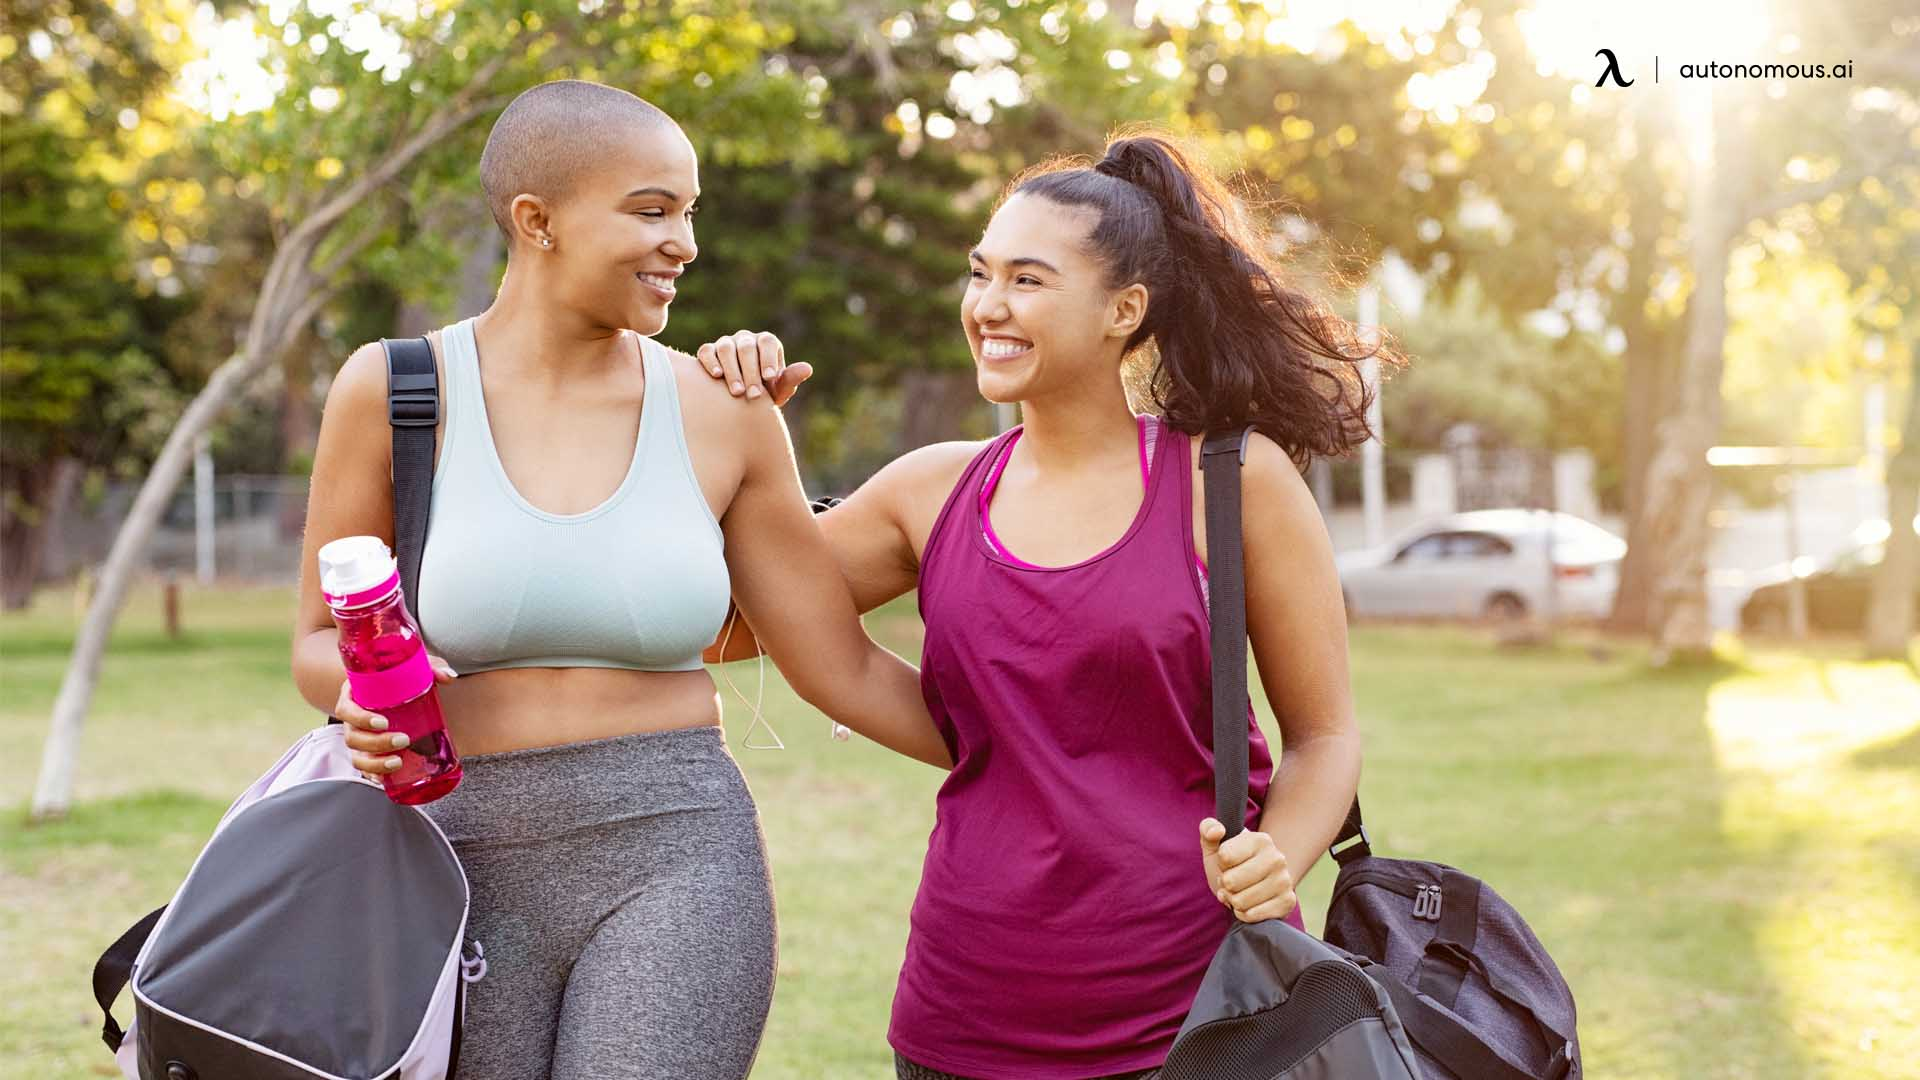 Add Some Physical Activities to Your Daily Routine